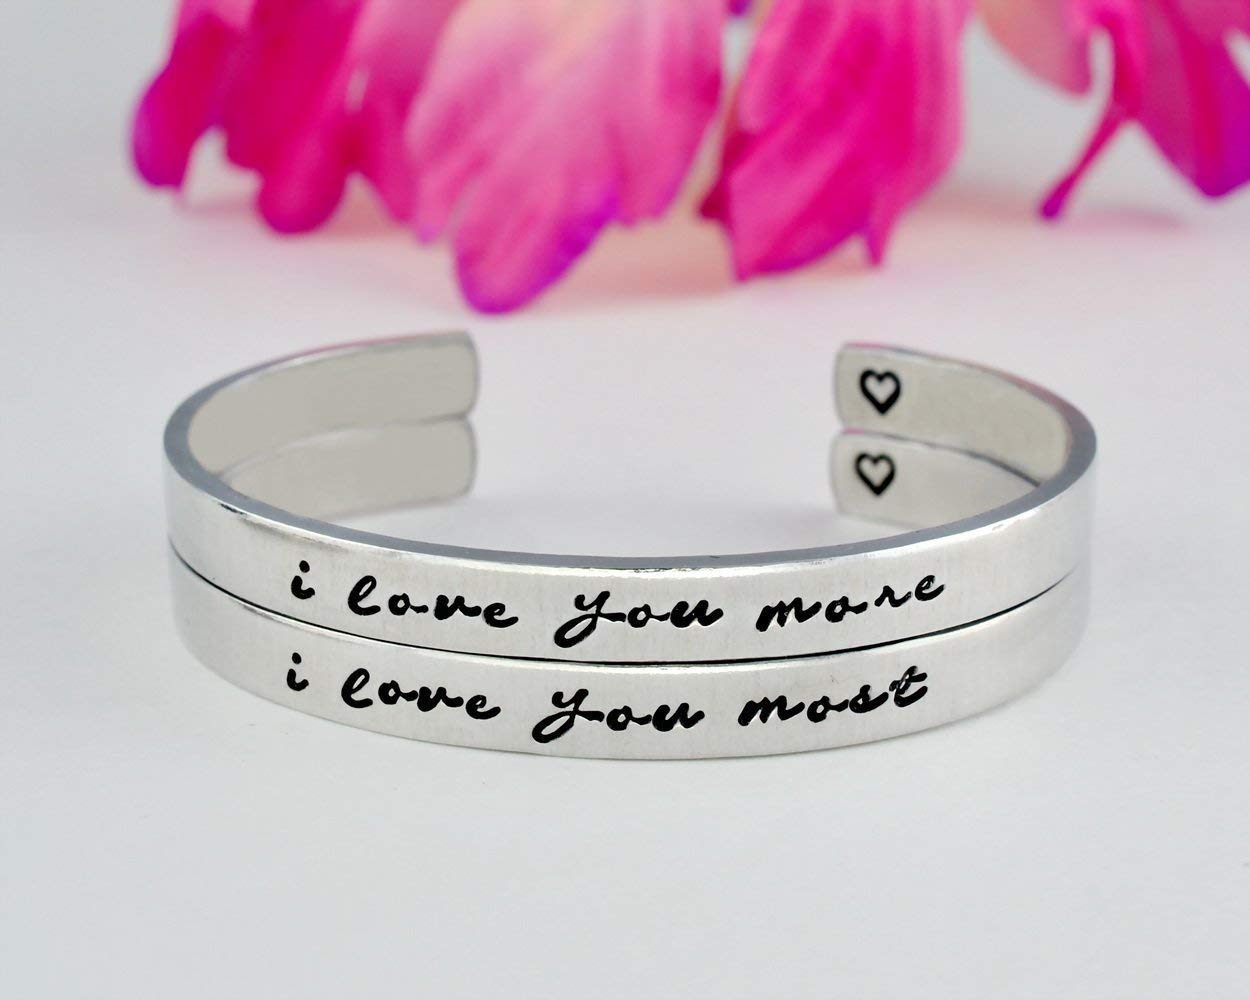 i love you more/i love you most - Hand Stamped Aluminum Cuff Bracelets Set of 2, Mom Daughter Sisters Friends BFF Couples Lovers Family Love Gift, Mother's Day, Girlfriend Valentines Day Gift, V2